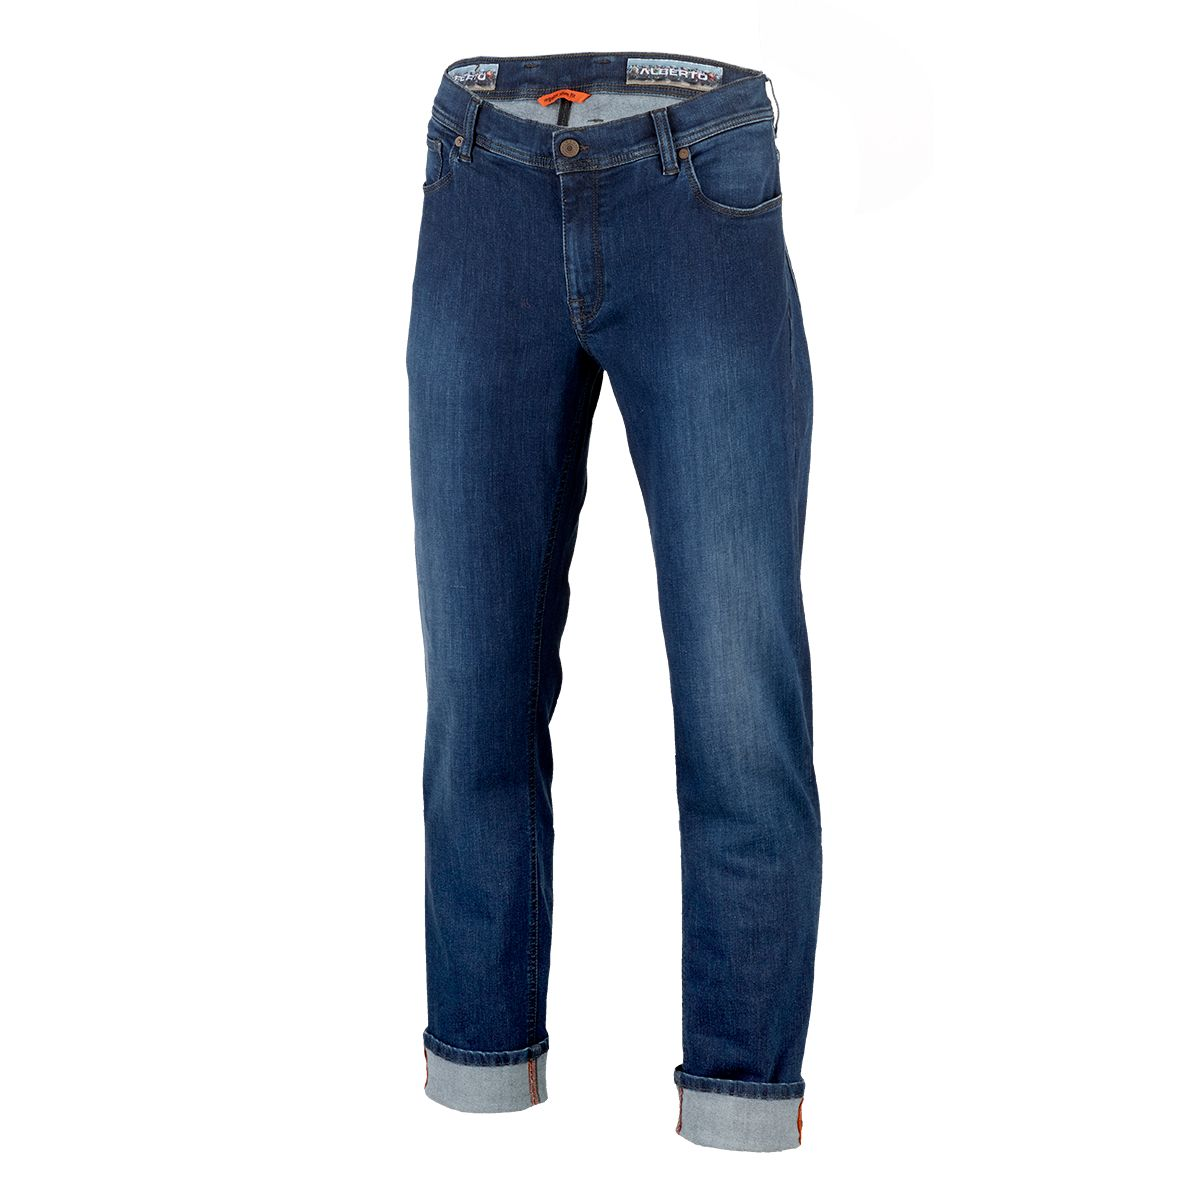 BIKE Superfit Softwear Denim Fahrradjeans